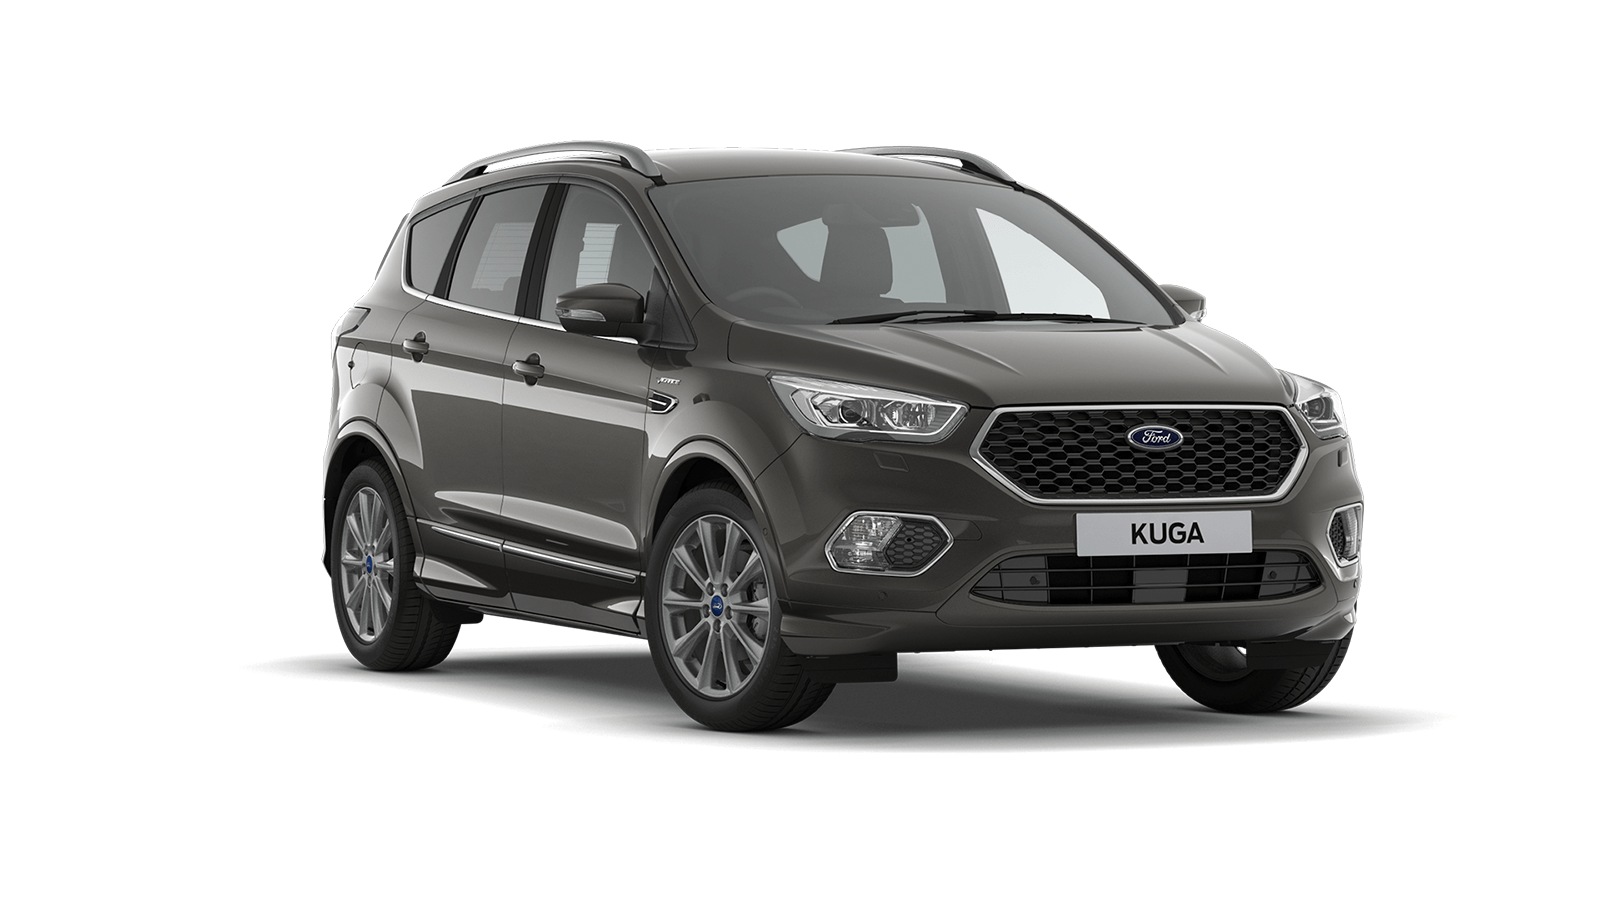 Ford Kuga at Ludham Garage